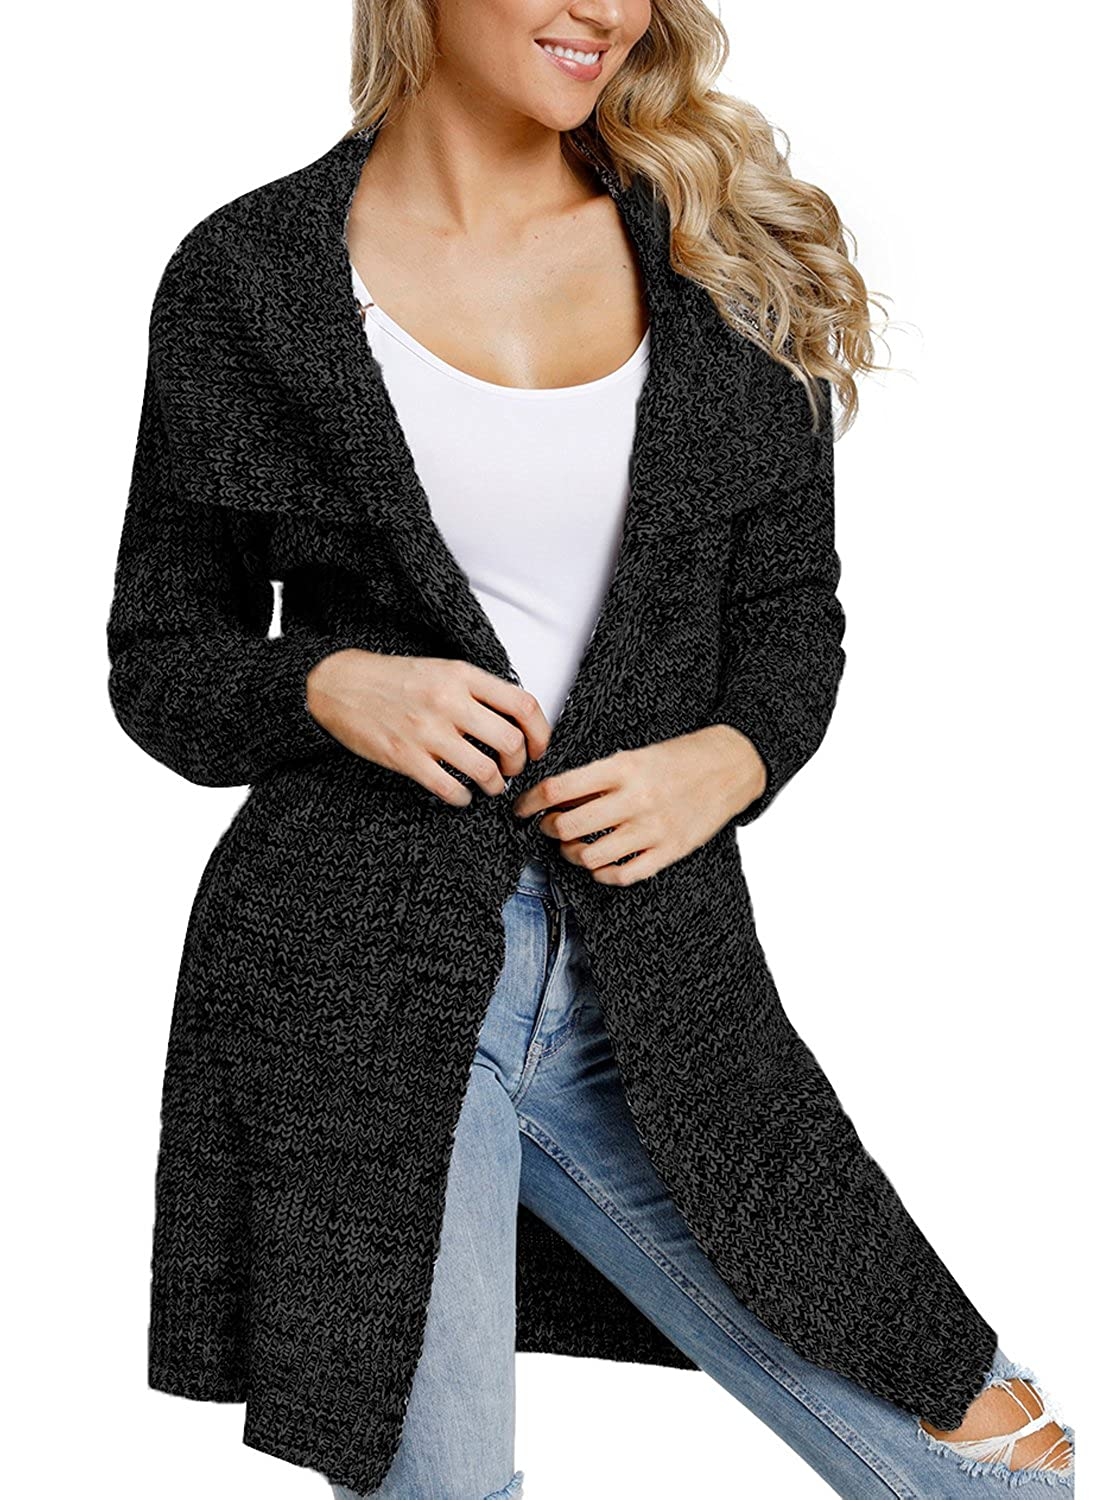 a9bd50147 Top 10 wholesale Big Chunky Knit Cardigans - Chinabrands.com